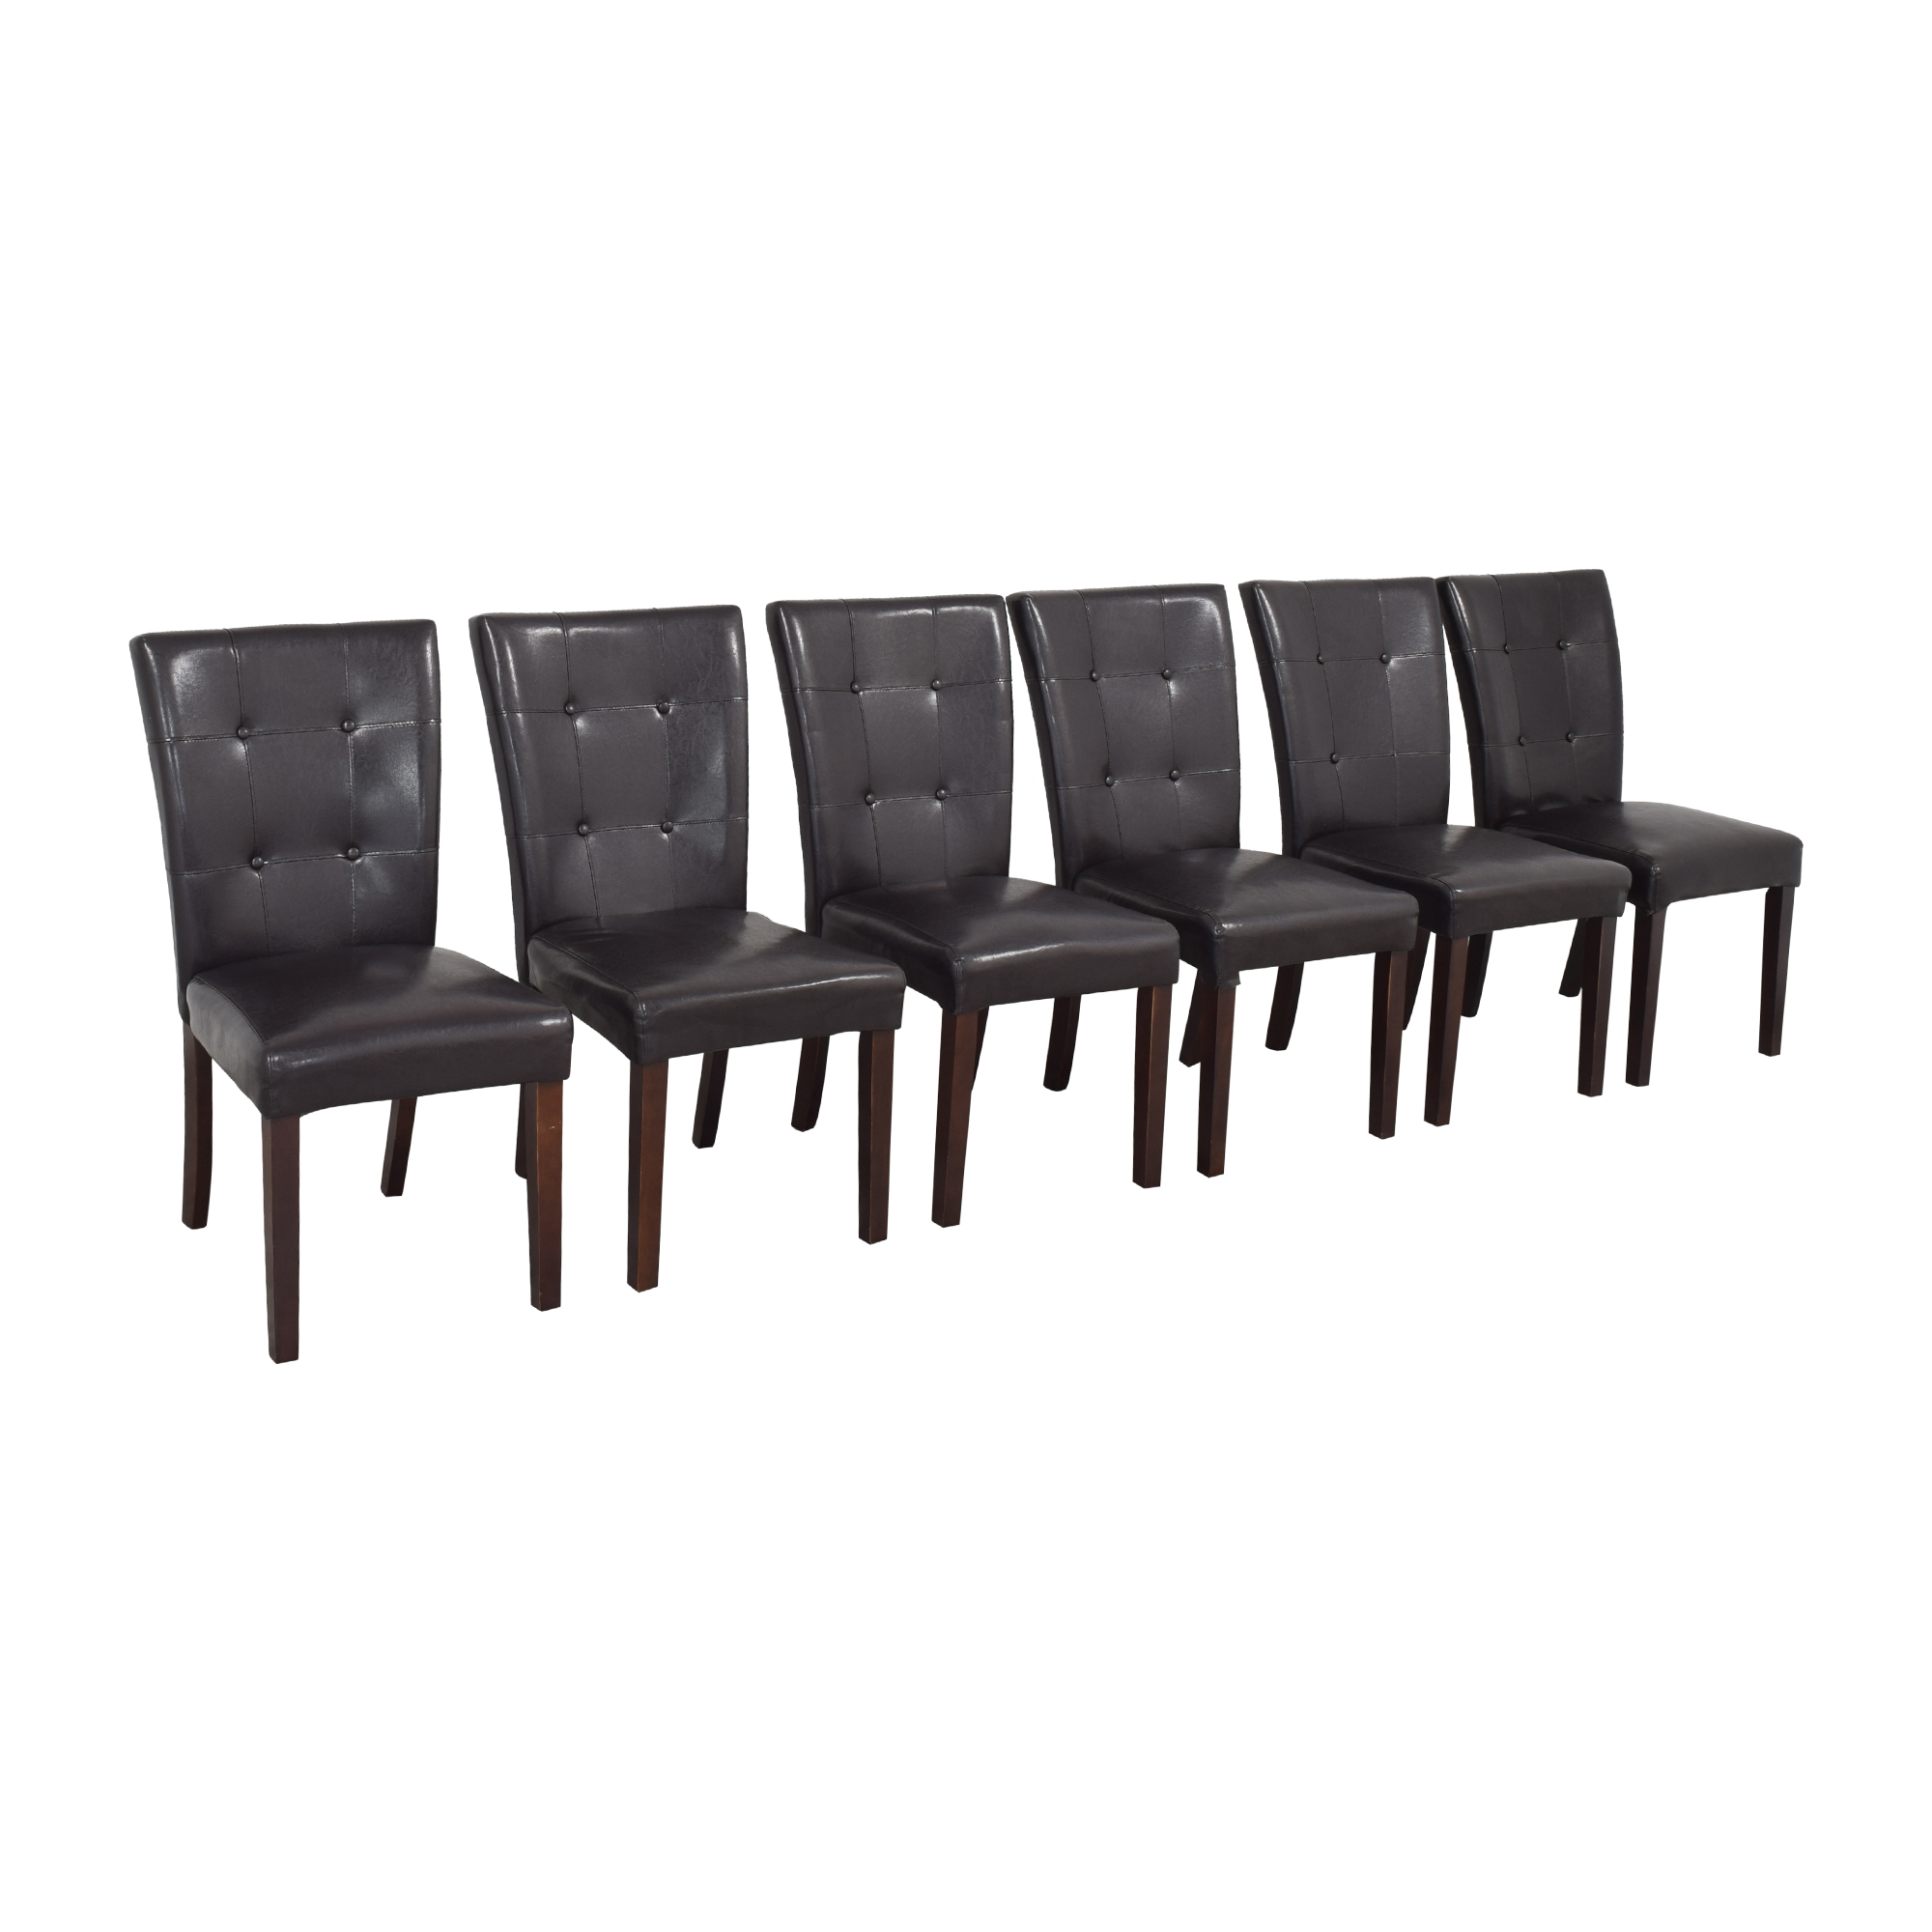 Tufted Parsons Dining Chairs price